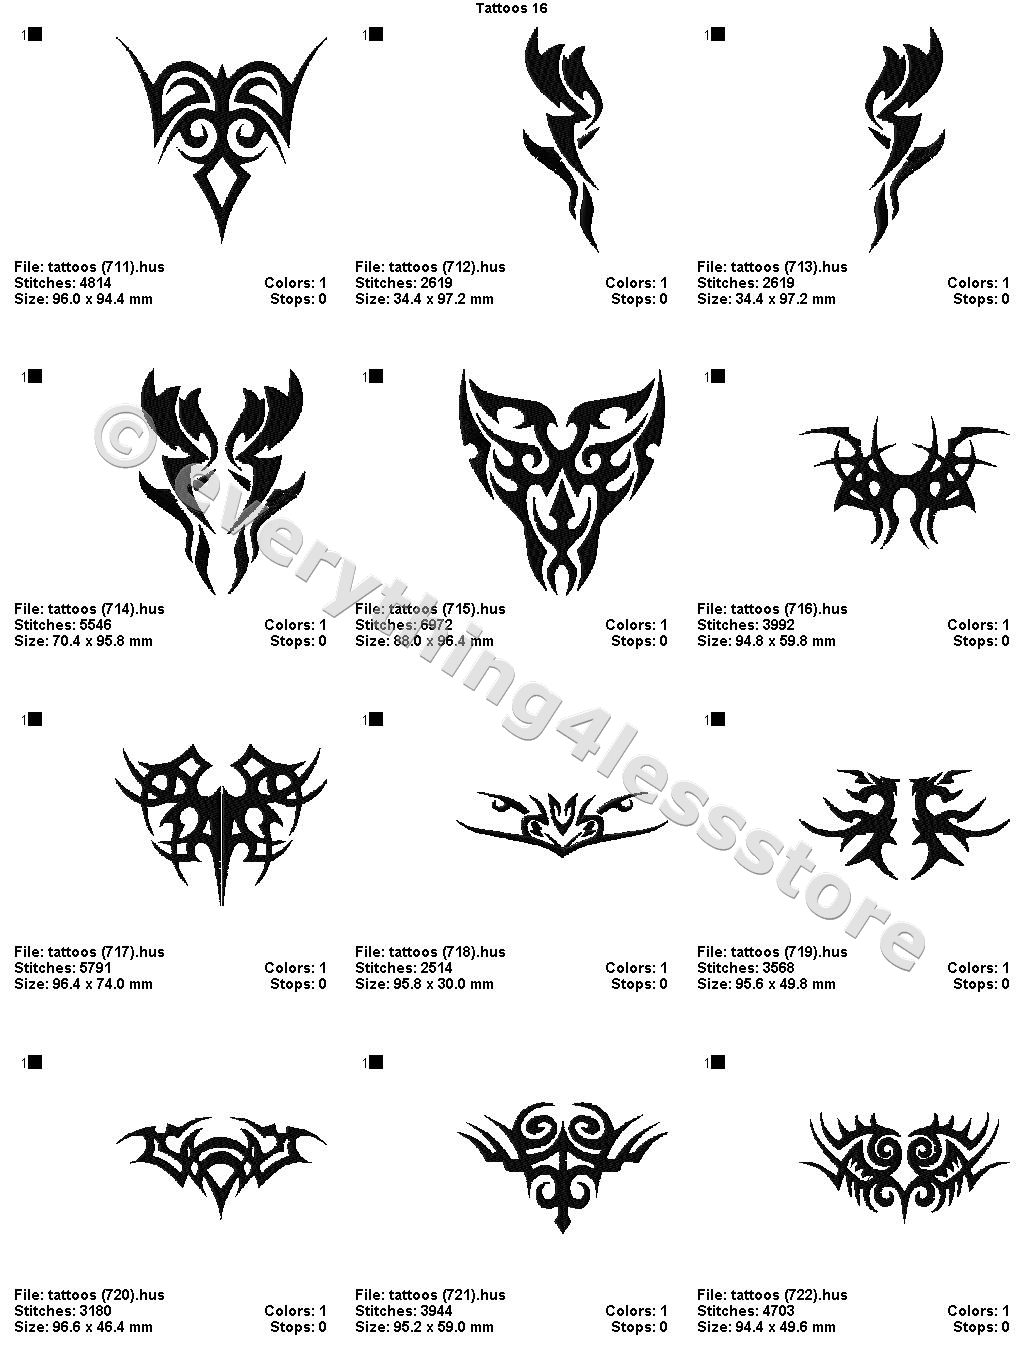 48 Tattoos 4X4 Volume 16 Mega Embroidery Designs On Cd Ebay Ideas And Designs